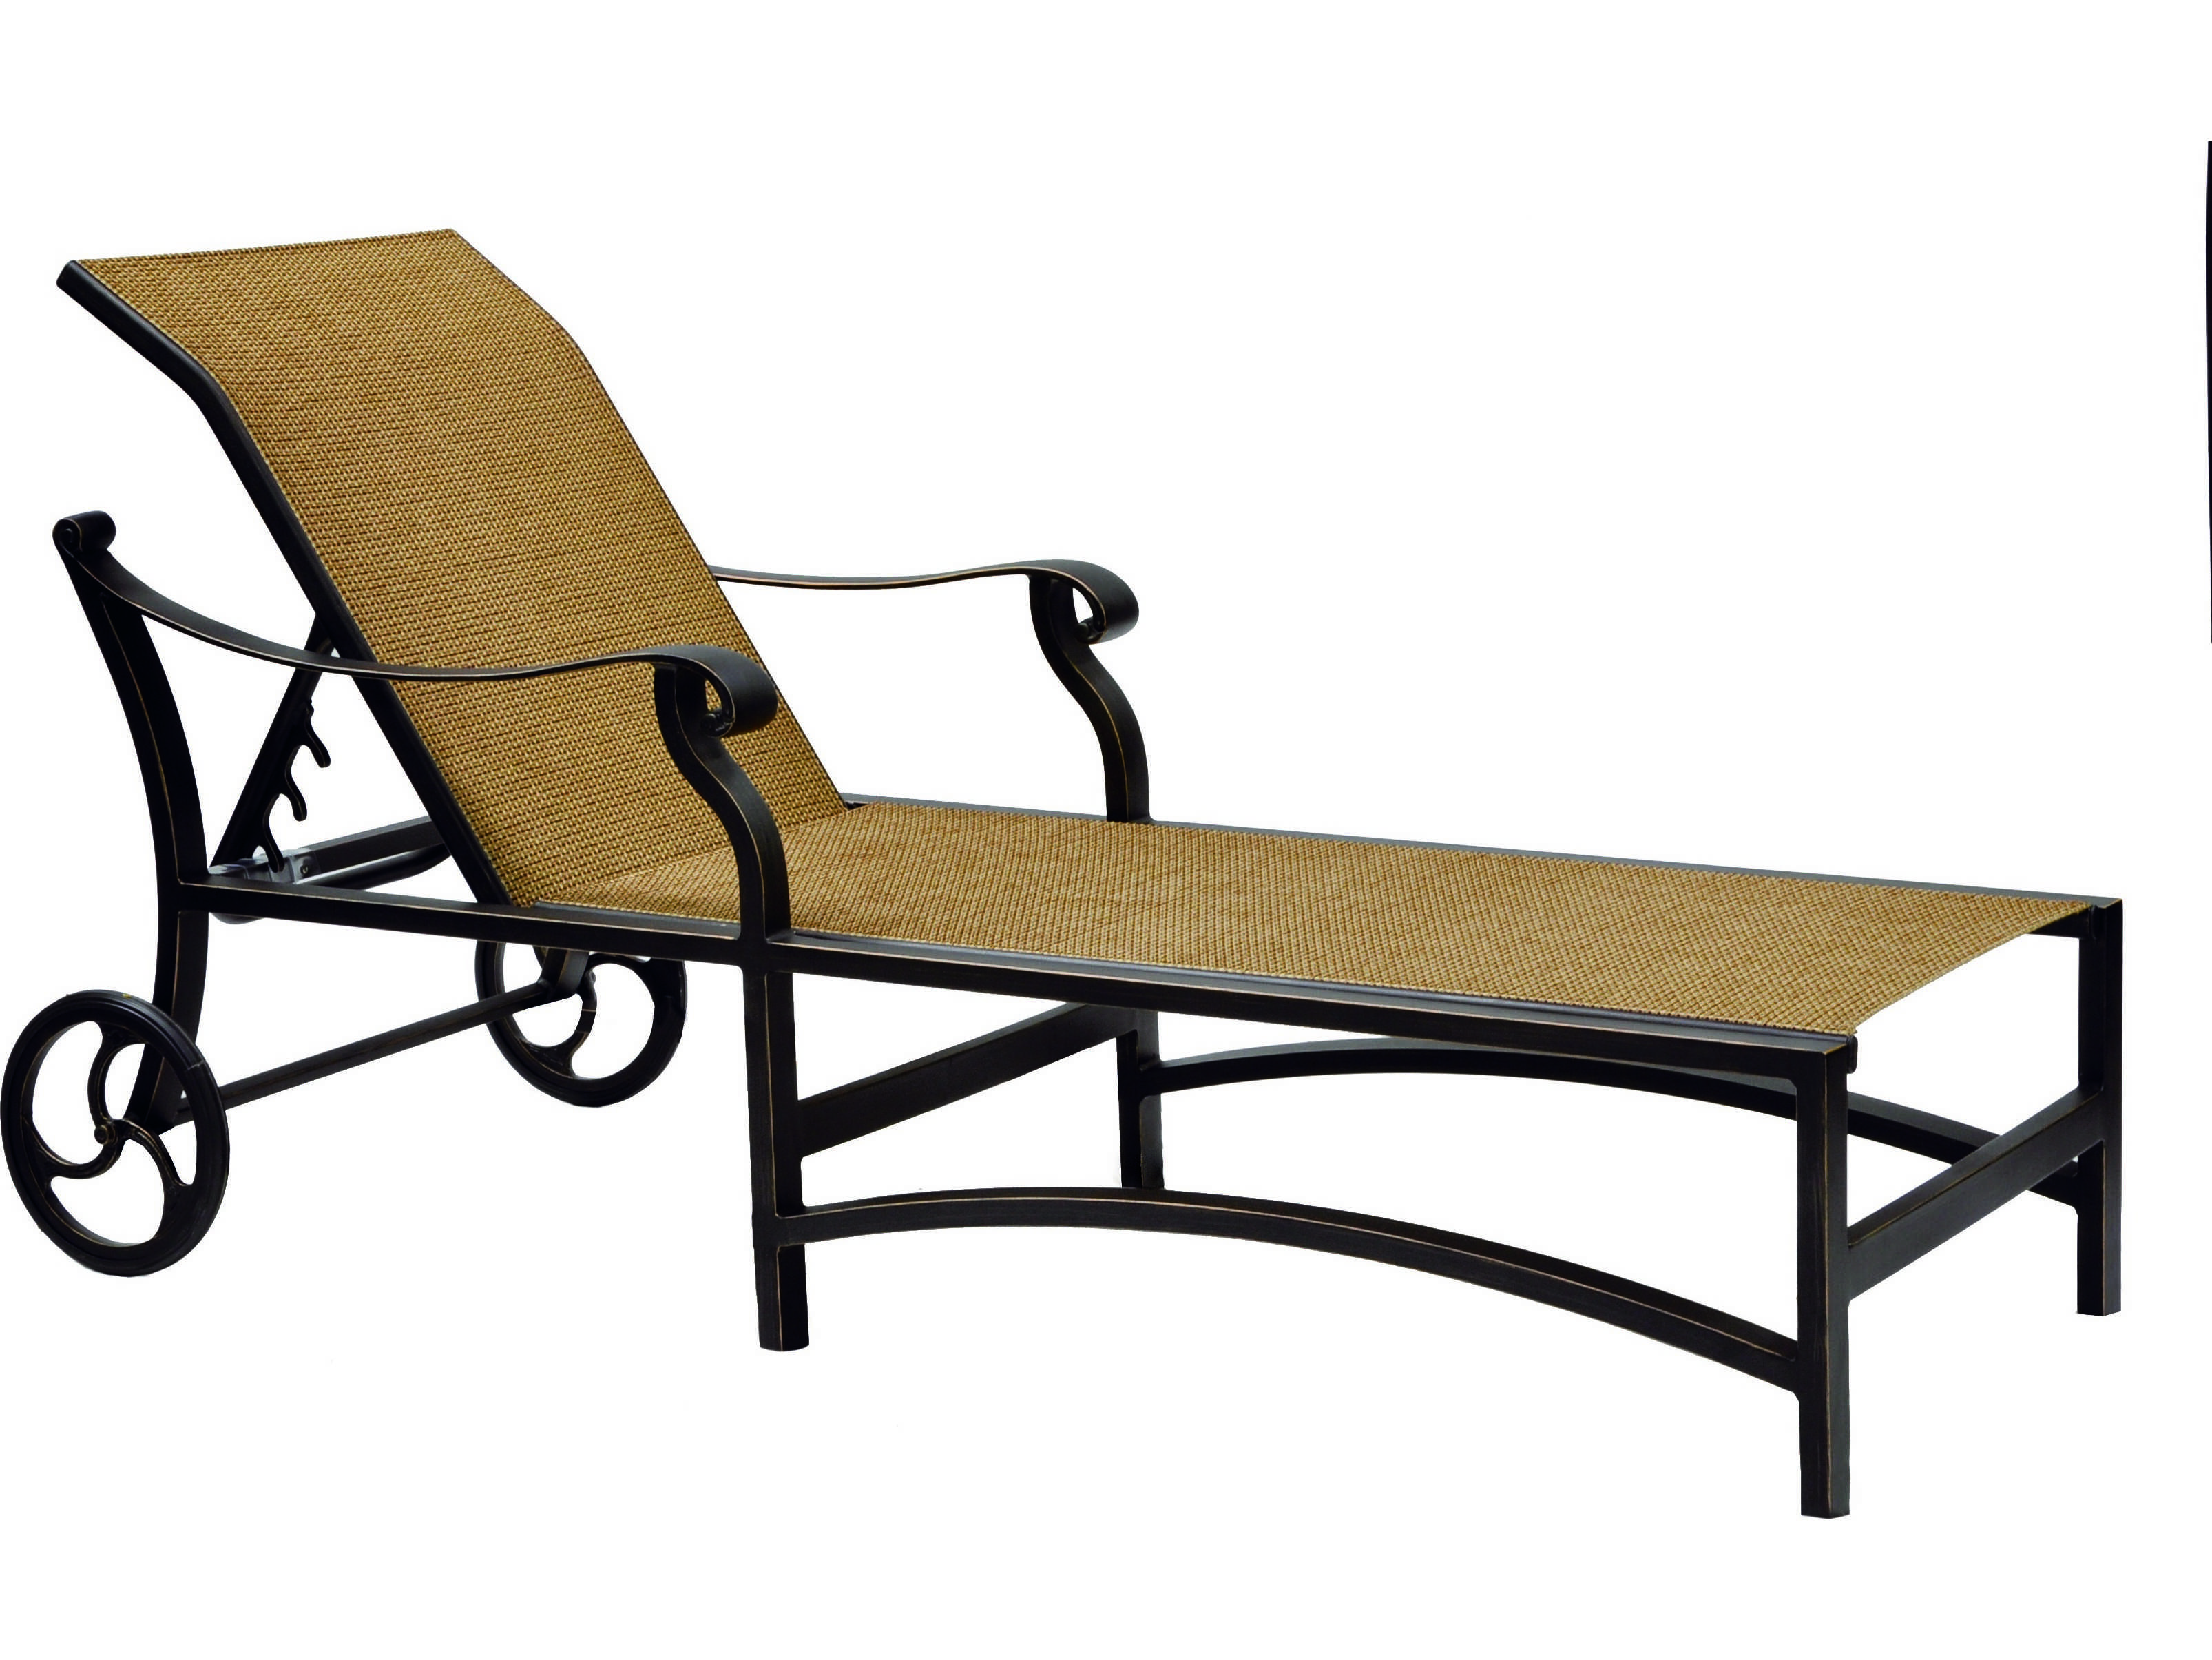 Castelle madrid sling cast aluminum adjustable chaise for Cast aluminum chaise lounge